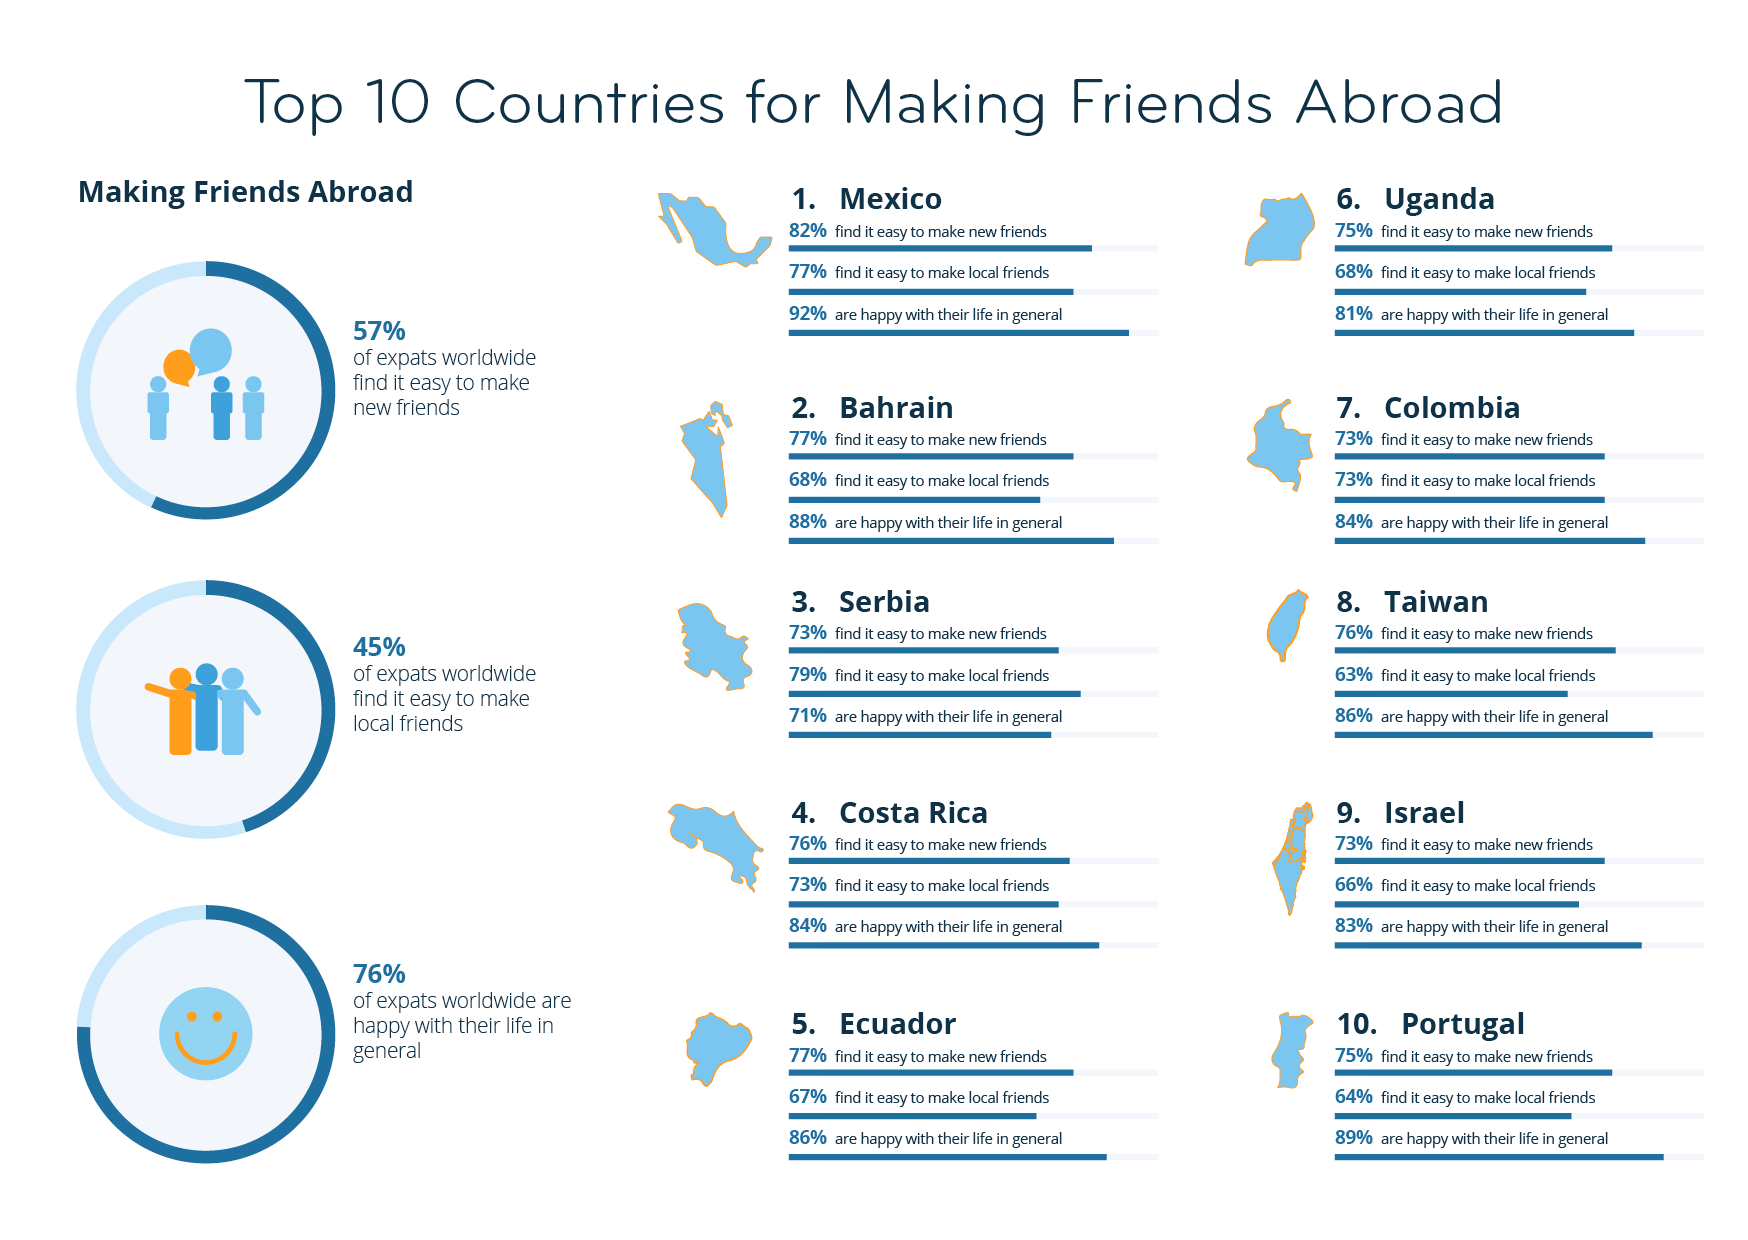 Top 10 Countries for Making Friends Abroad